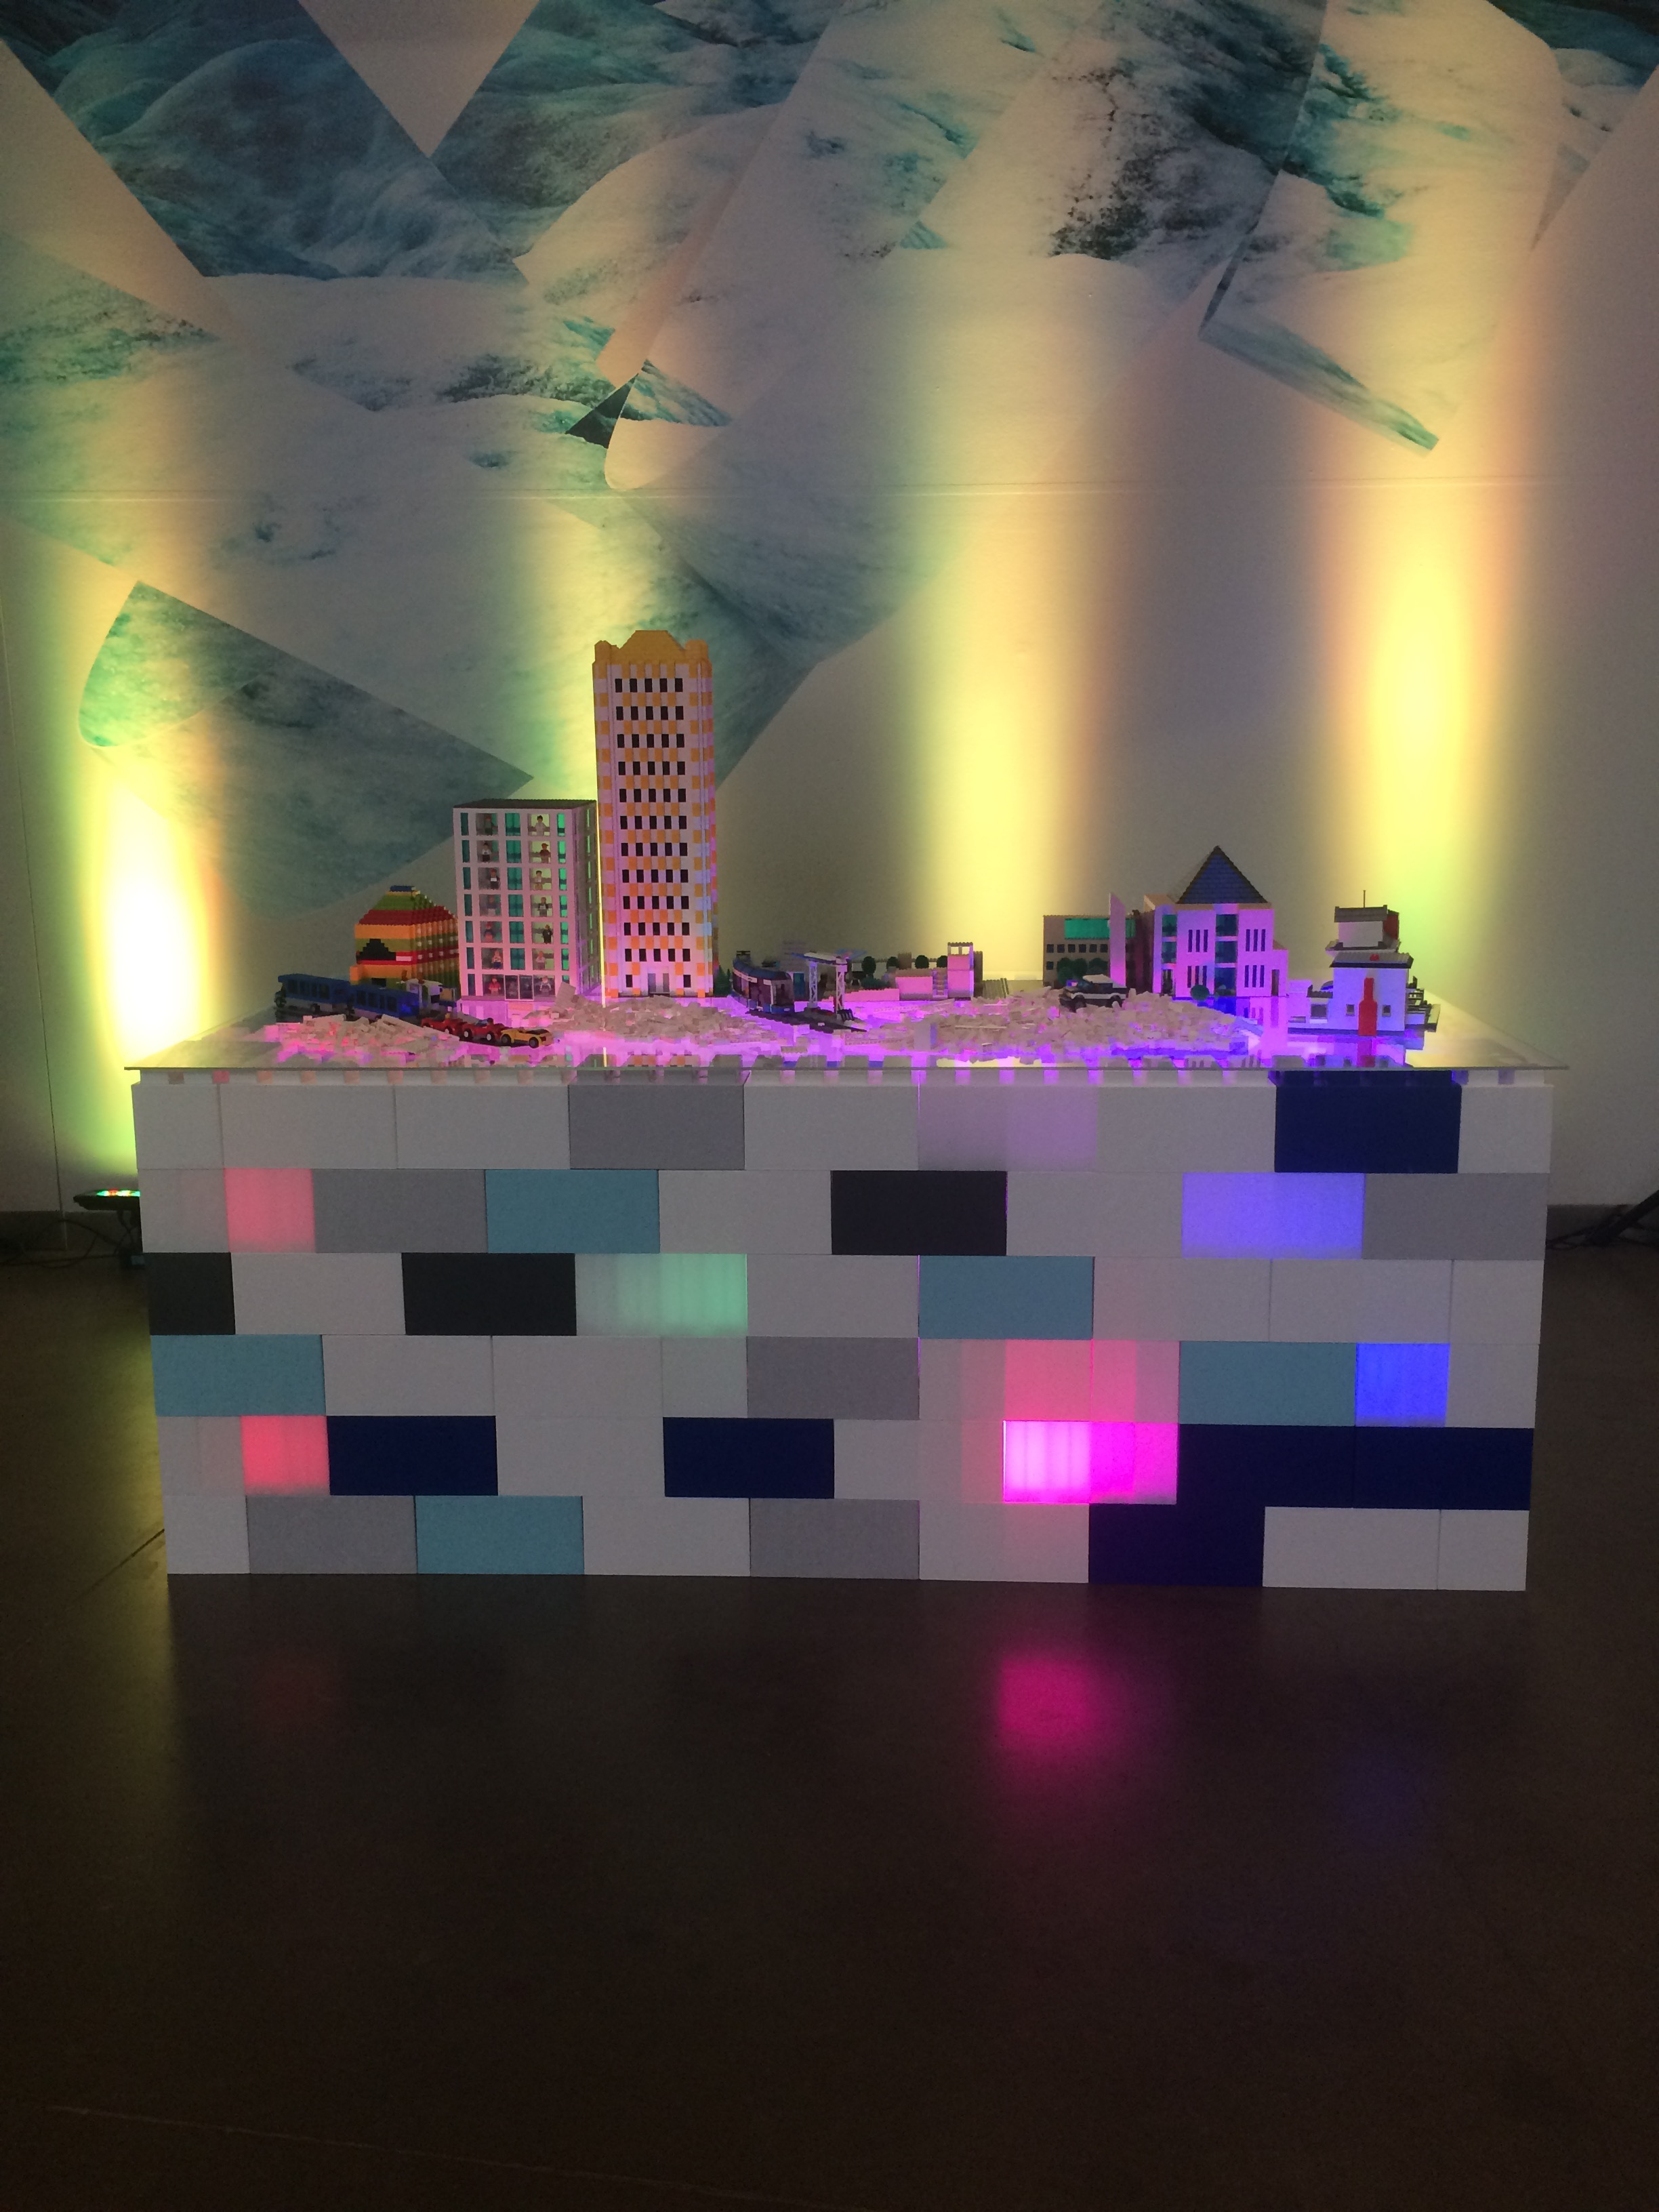 Create spectacular exhibits that can be illuminated with LED lights